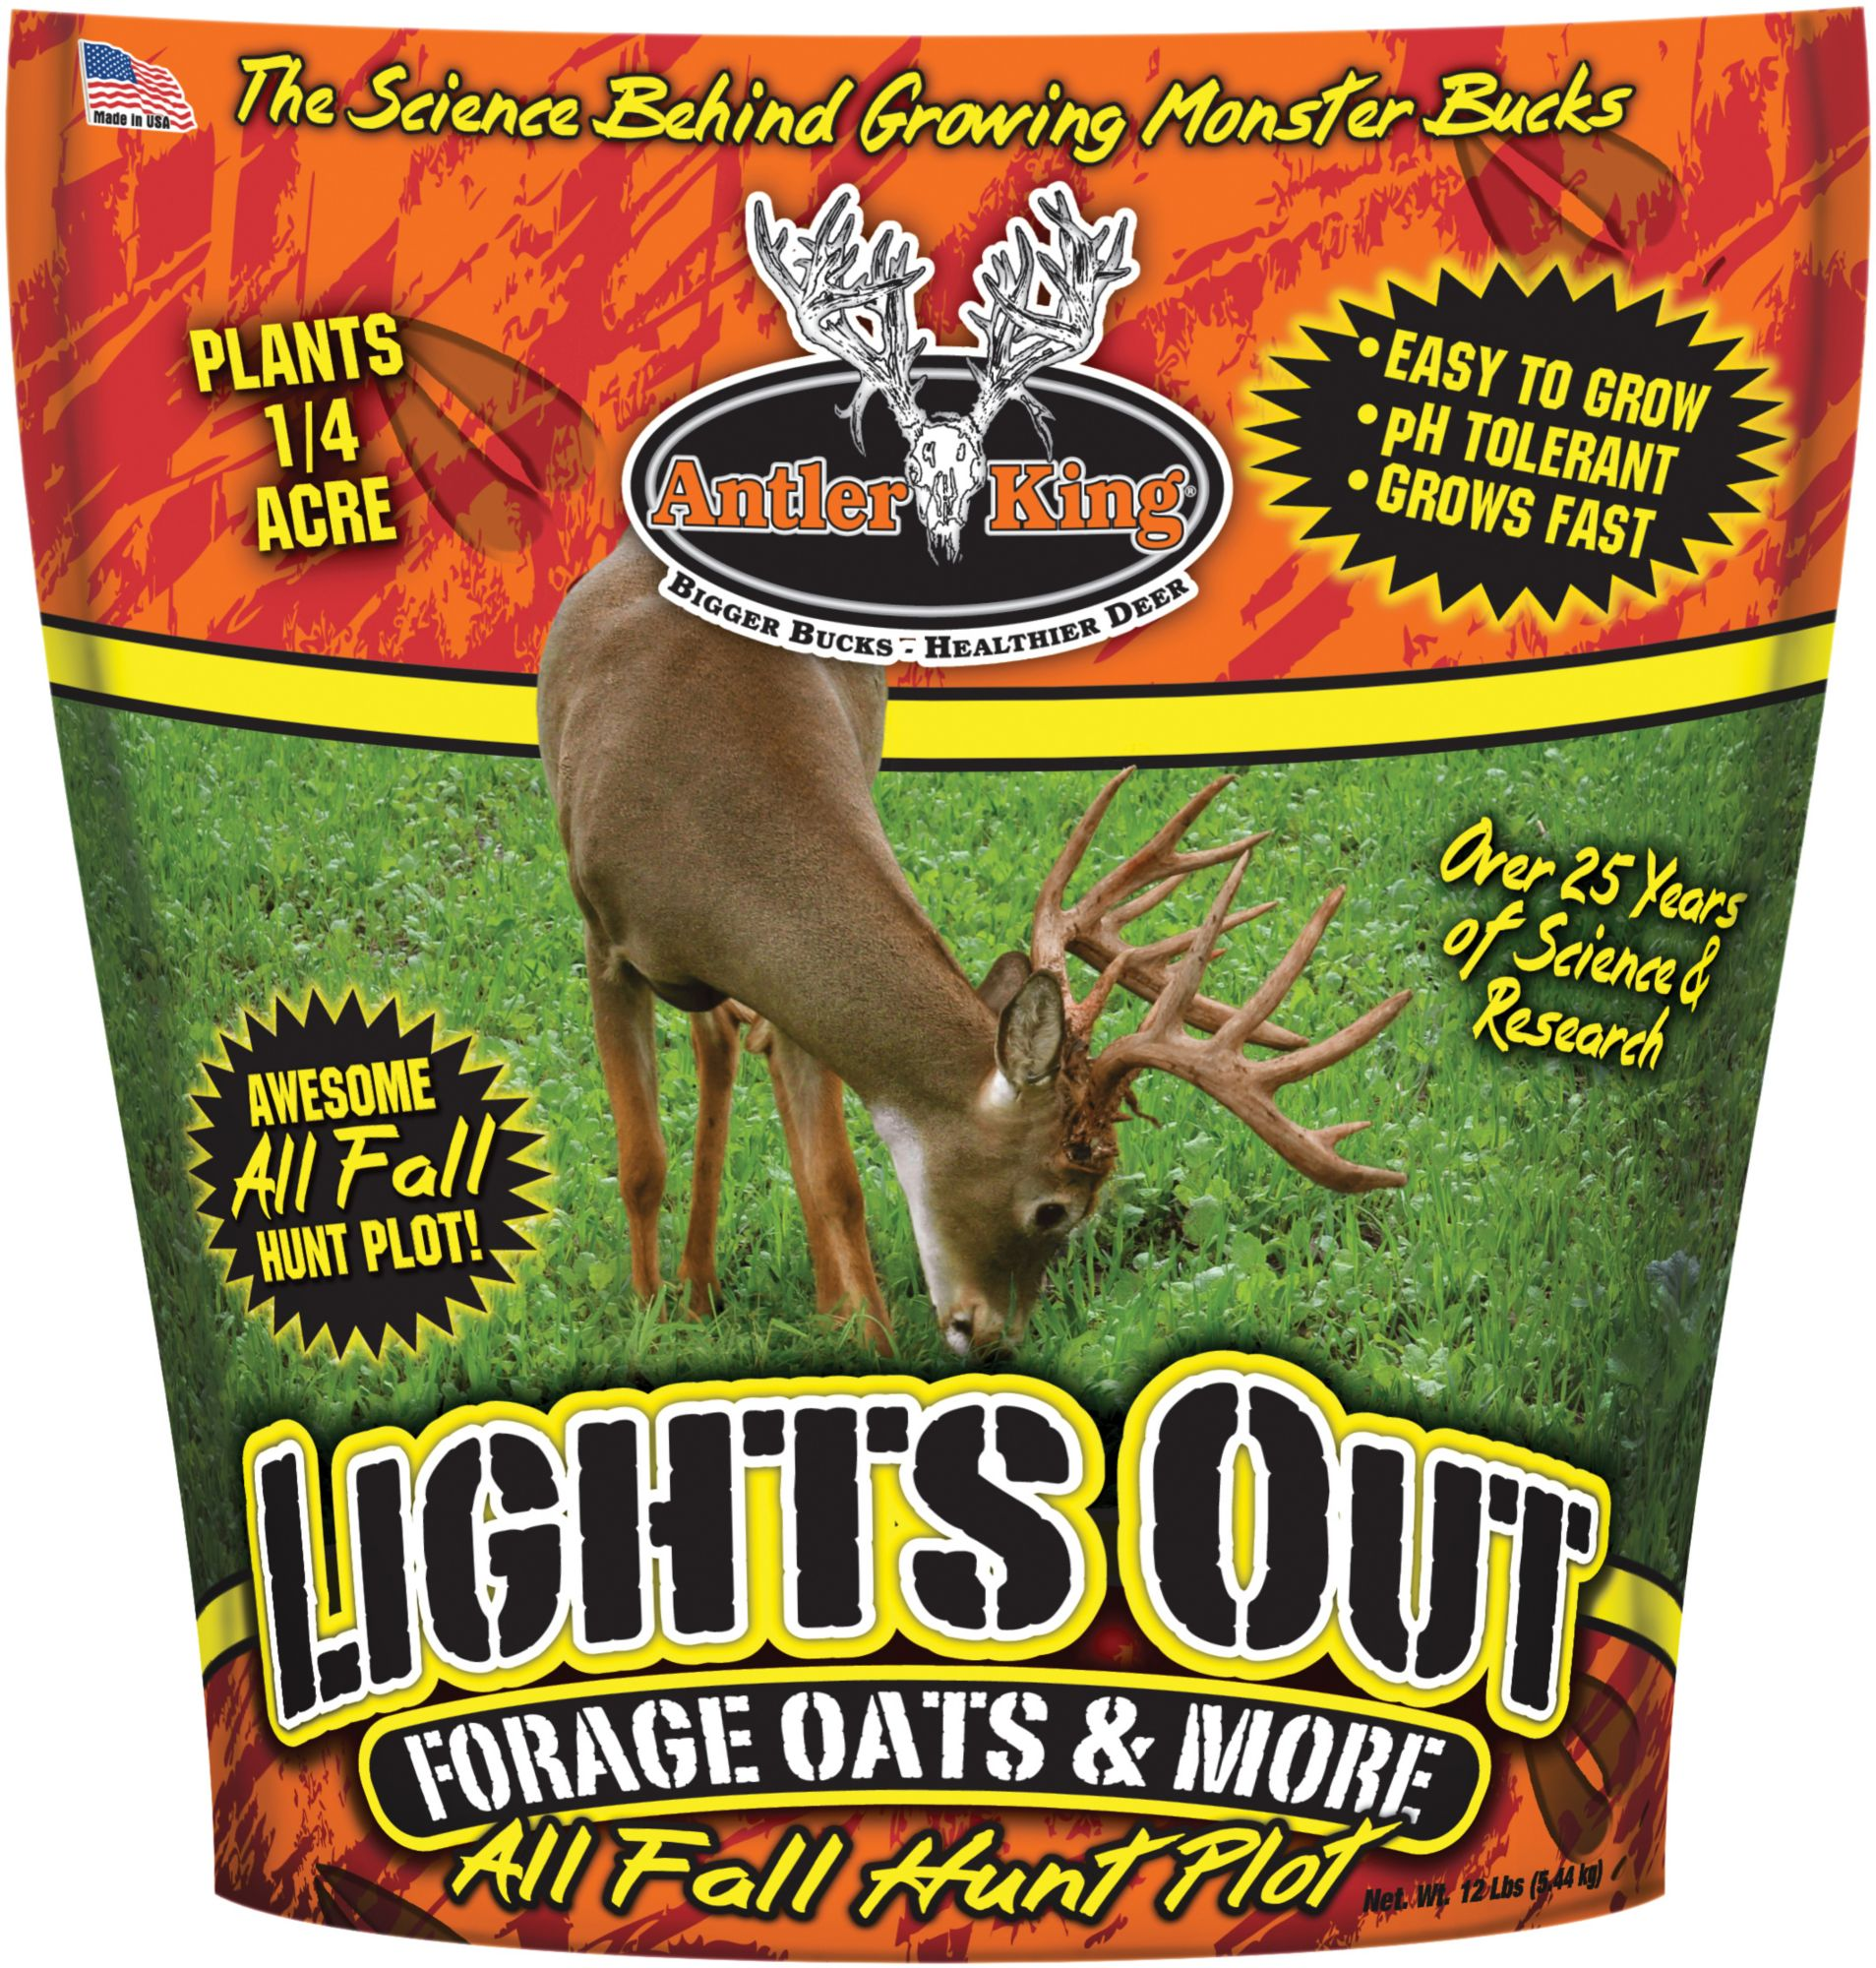 Antler King Lights Out Forage Oats Food Plot Seed, Size: One size thumbnail